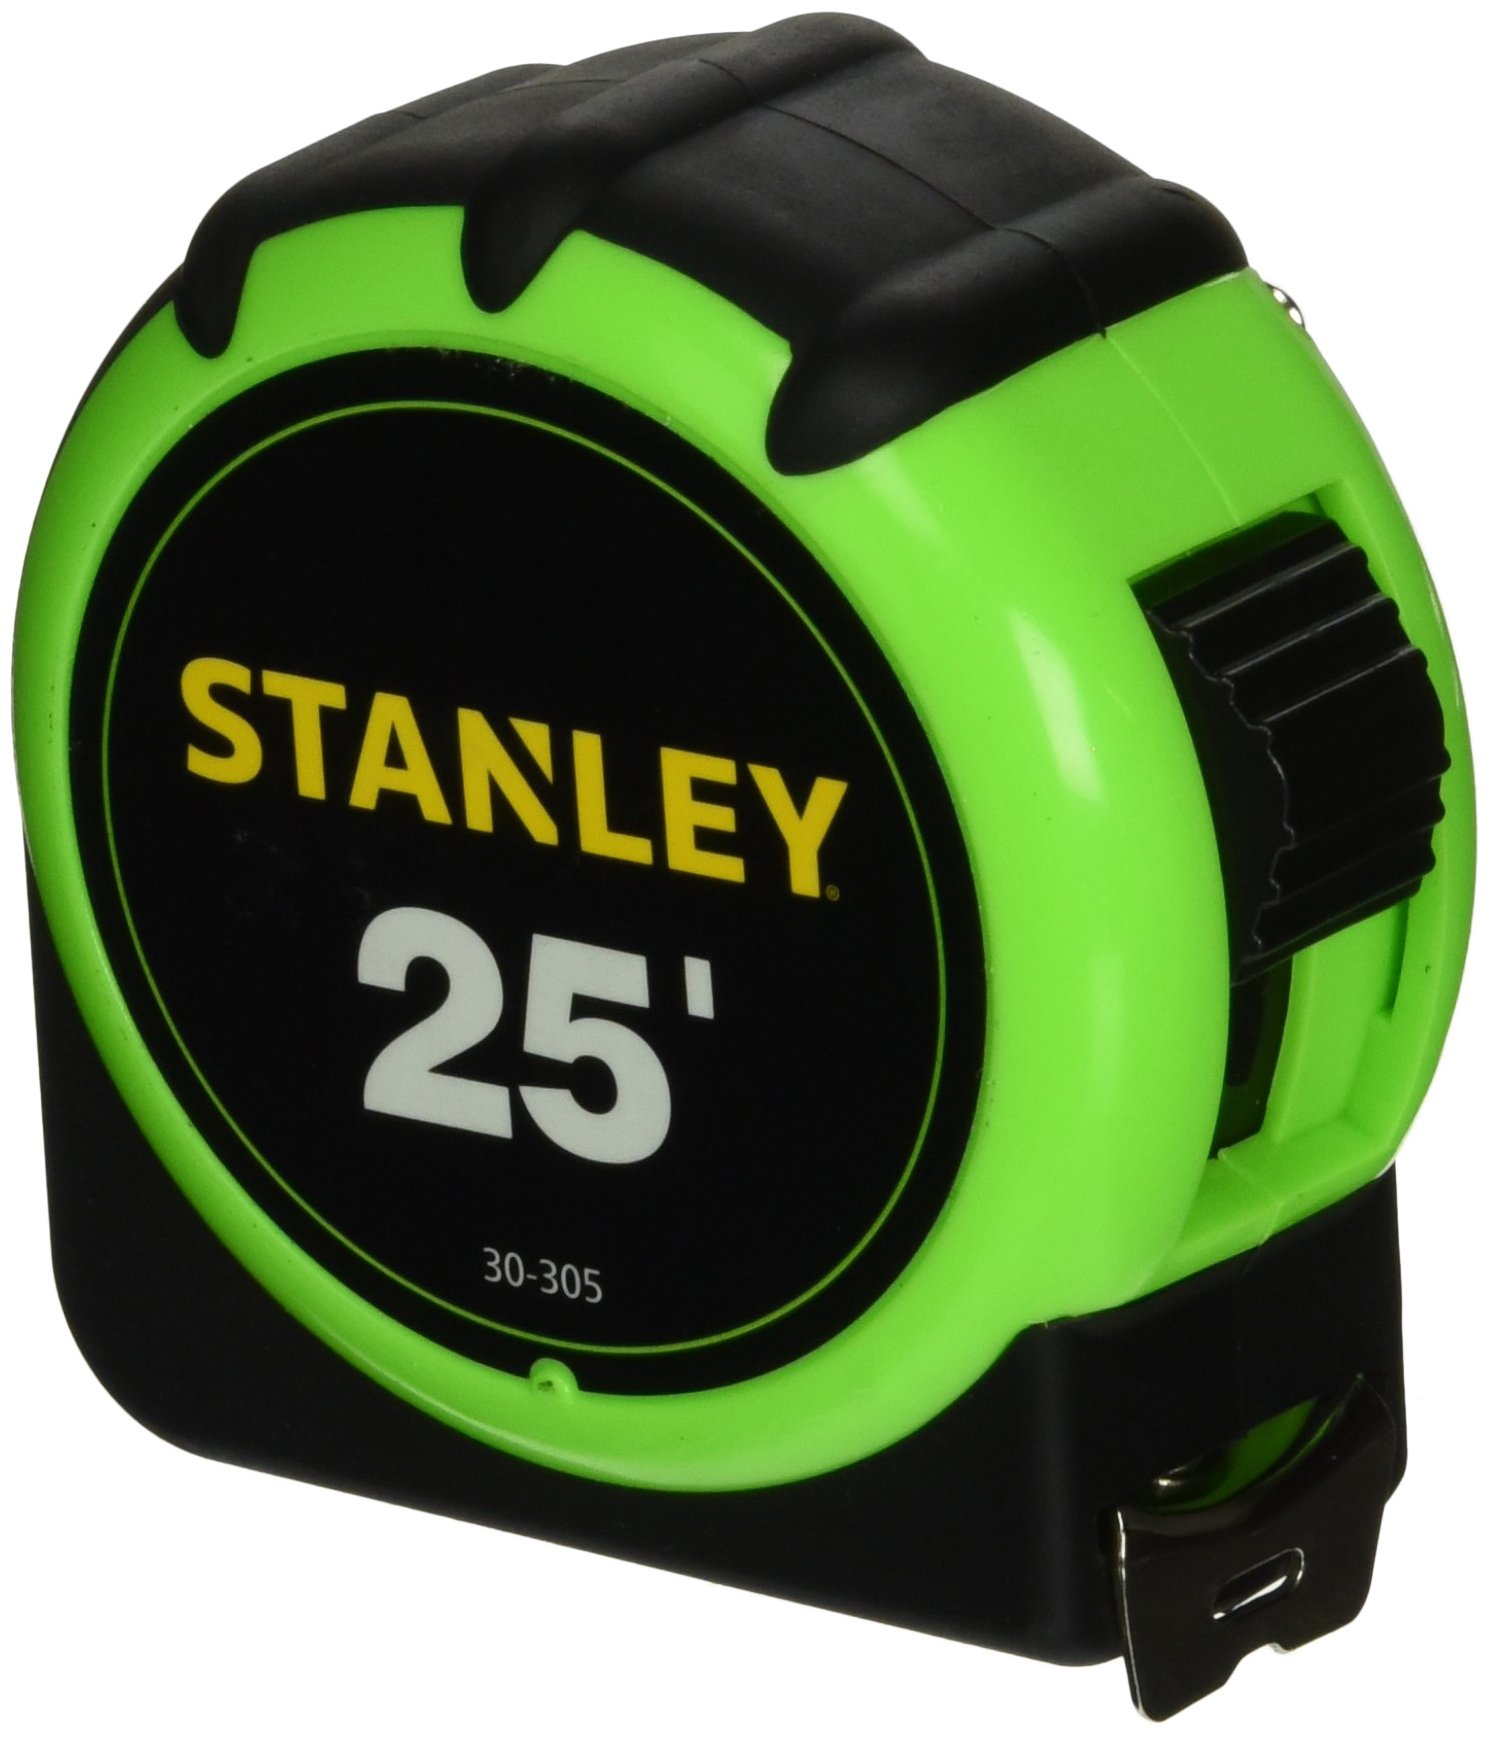 Stanley 30-305 High-Visibility Tape Rule, 1 Inch X 25' - 30-305J